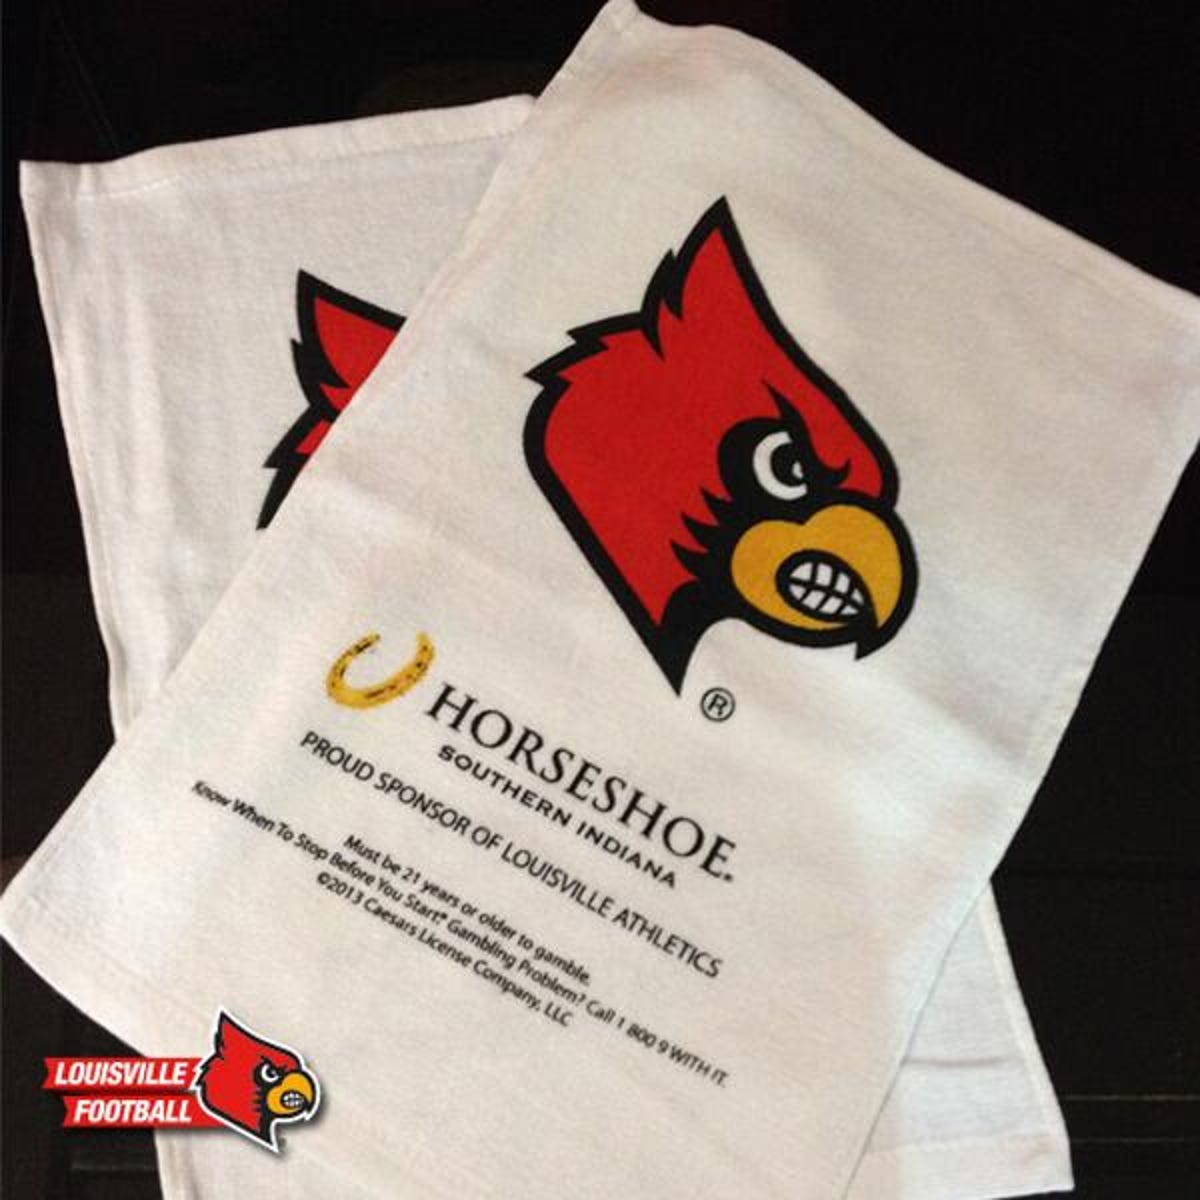 Louisville handing out 40,000 rally towels at sold-out